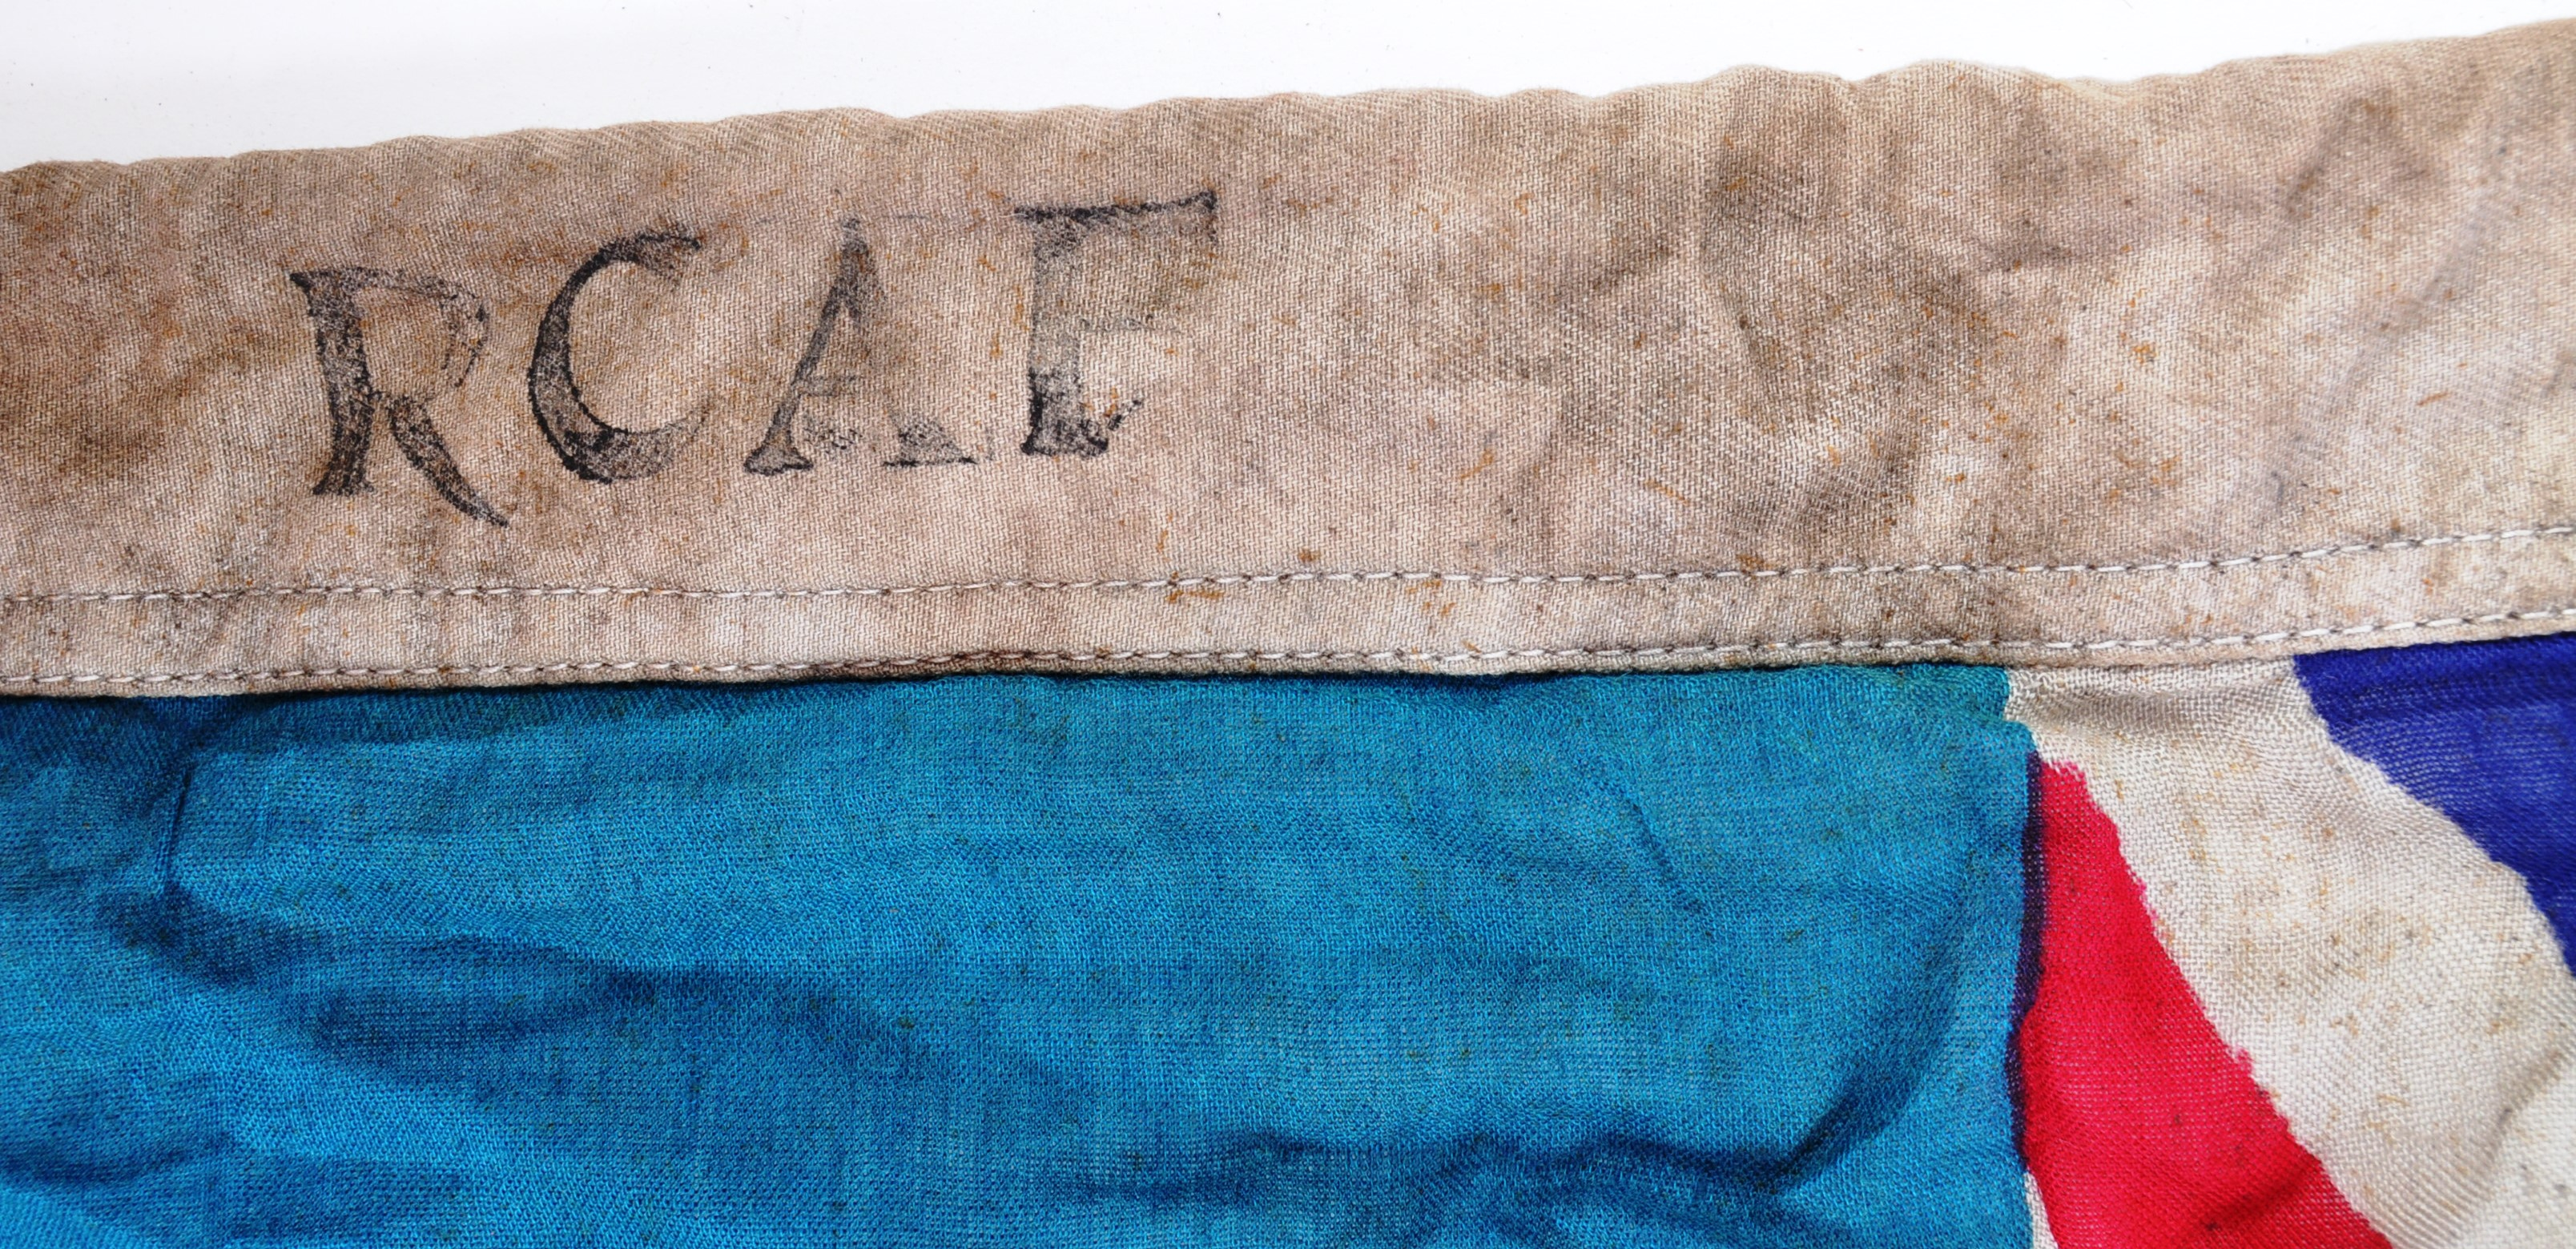 WWII SECOND WORLD WAR TYPE RCAF CANADIAN AIR FORCE BASE FLAG - Image 3 of 7